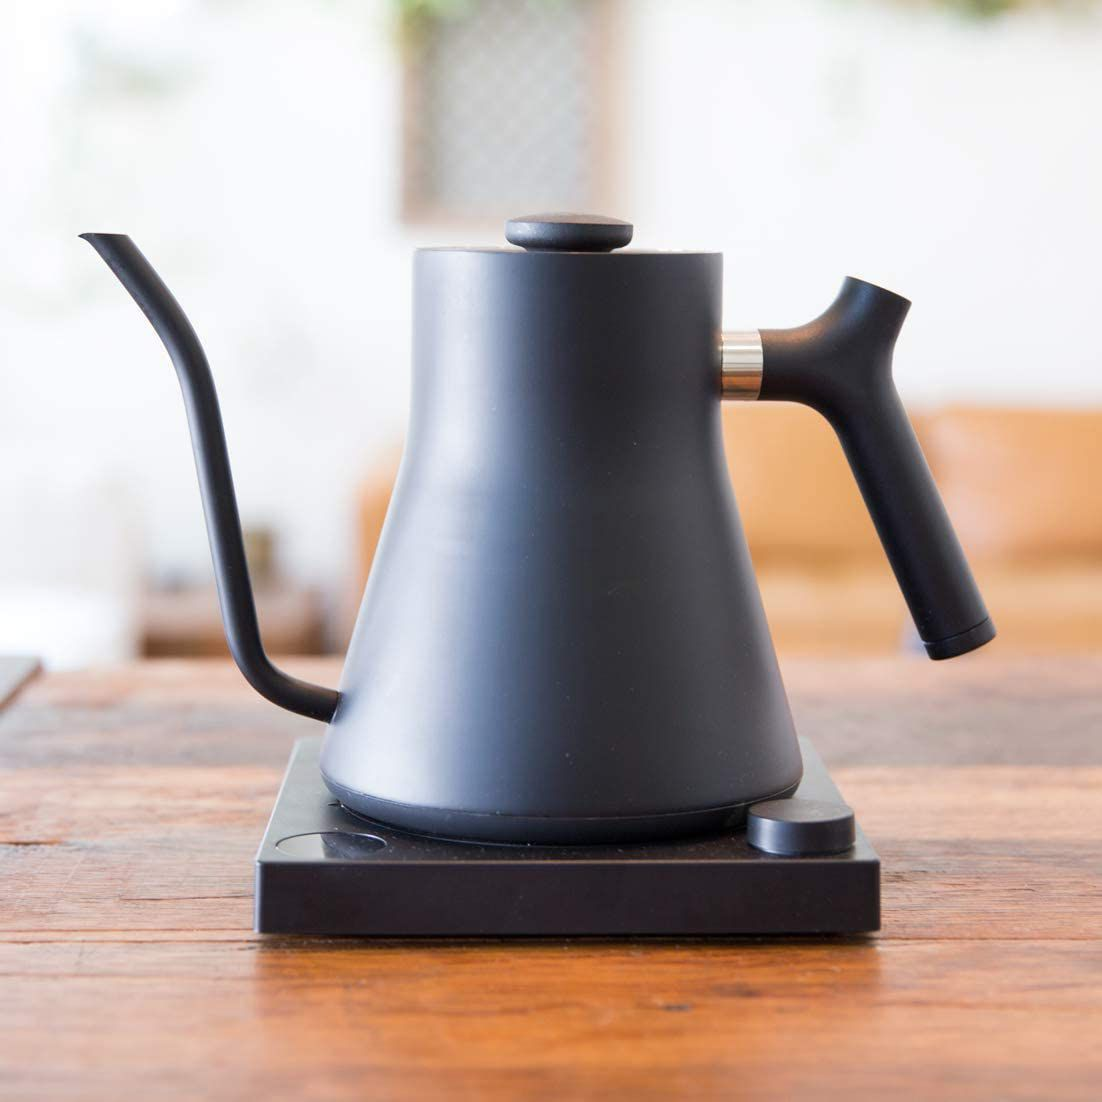 Useful Inexpensive Gadgets - Fellow's Stagg KEG electric kettle